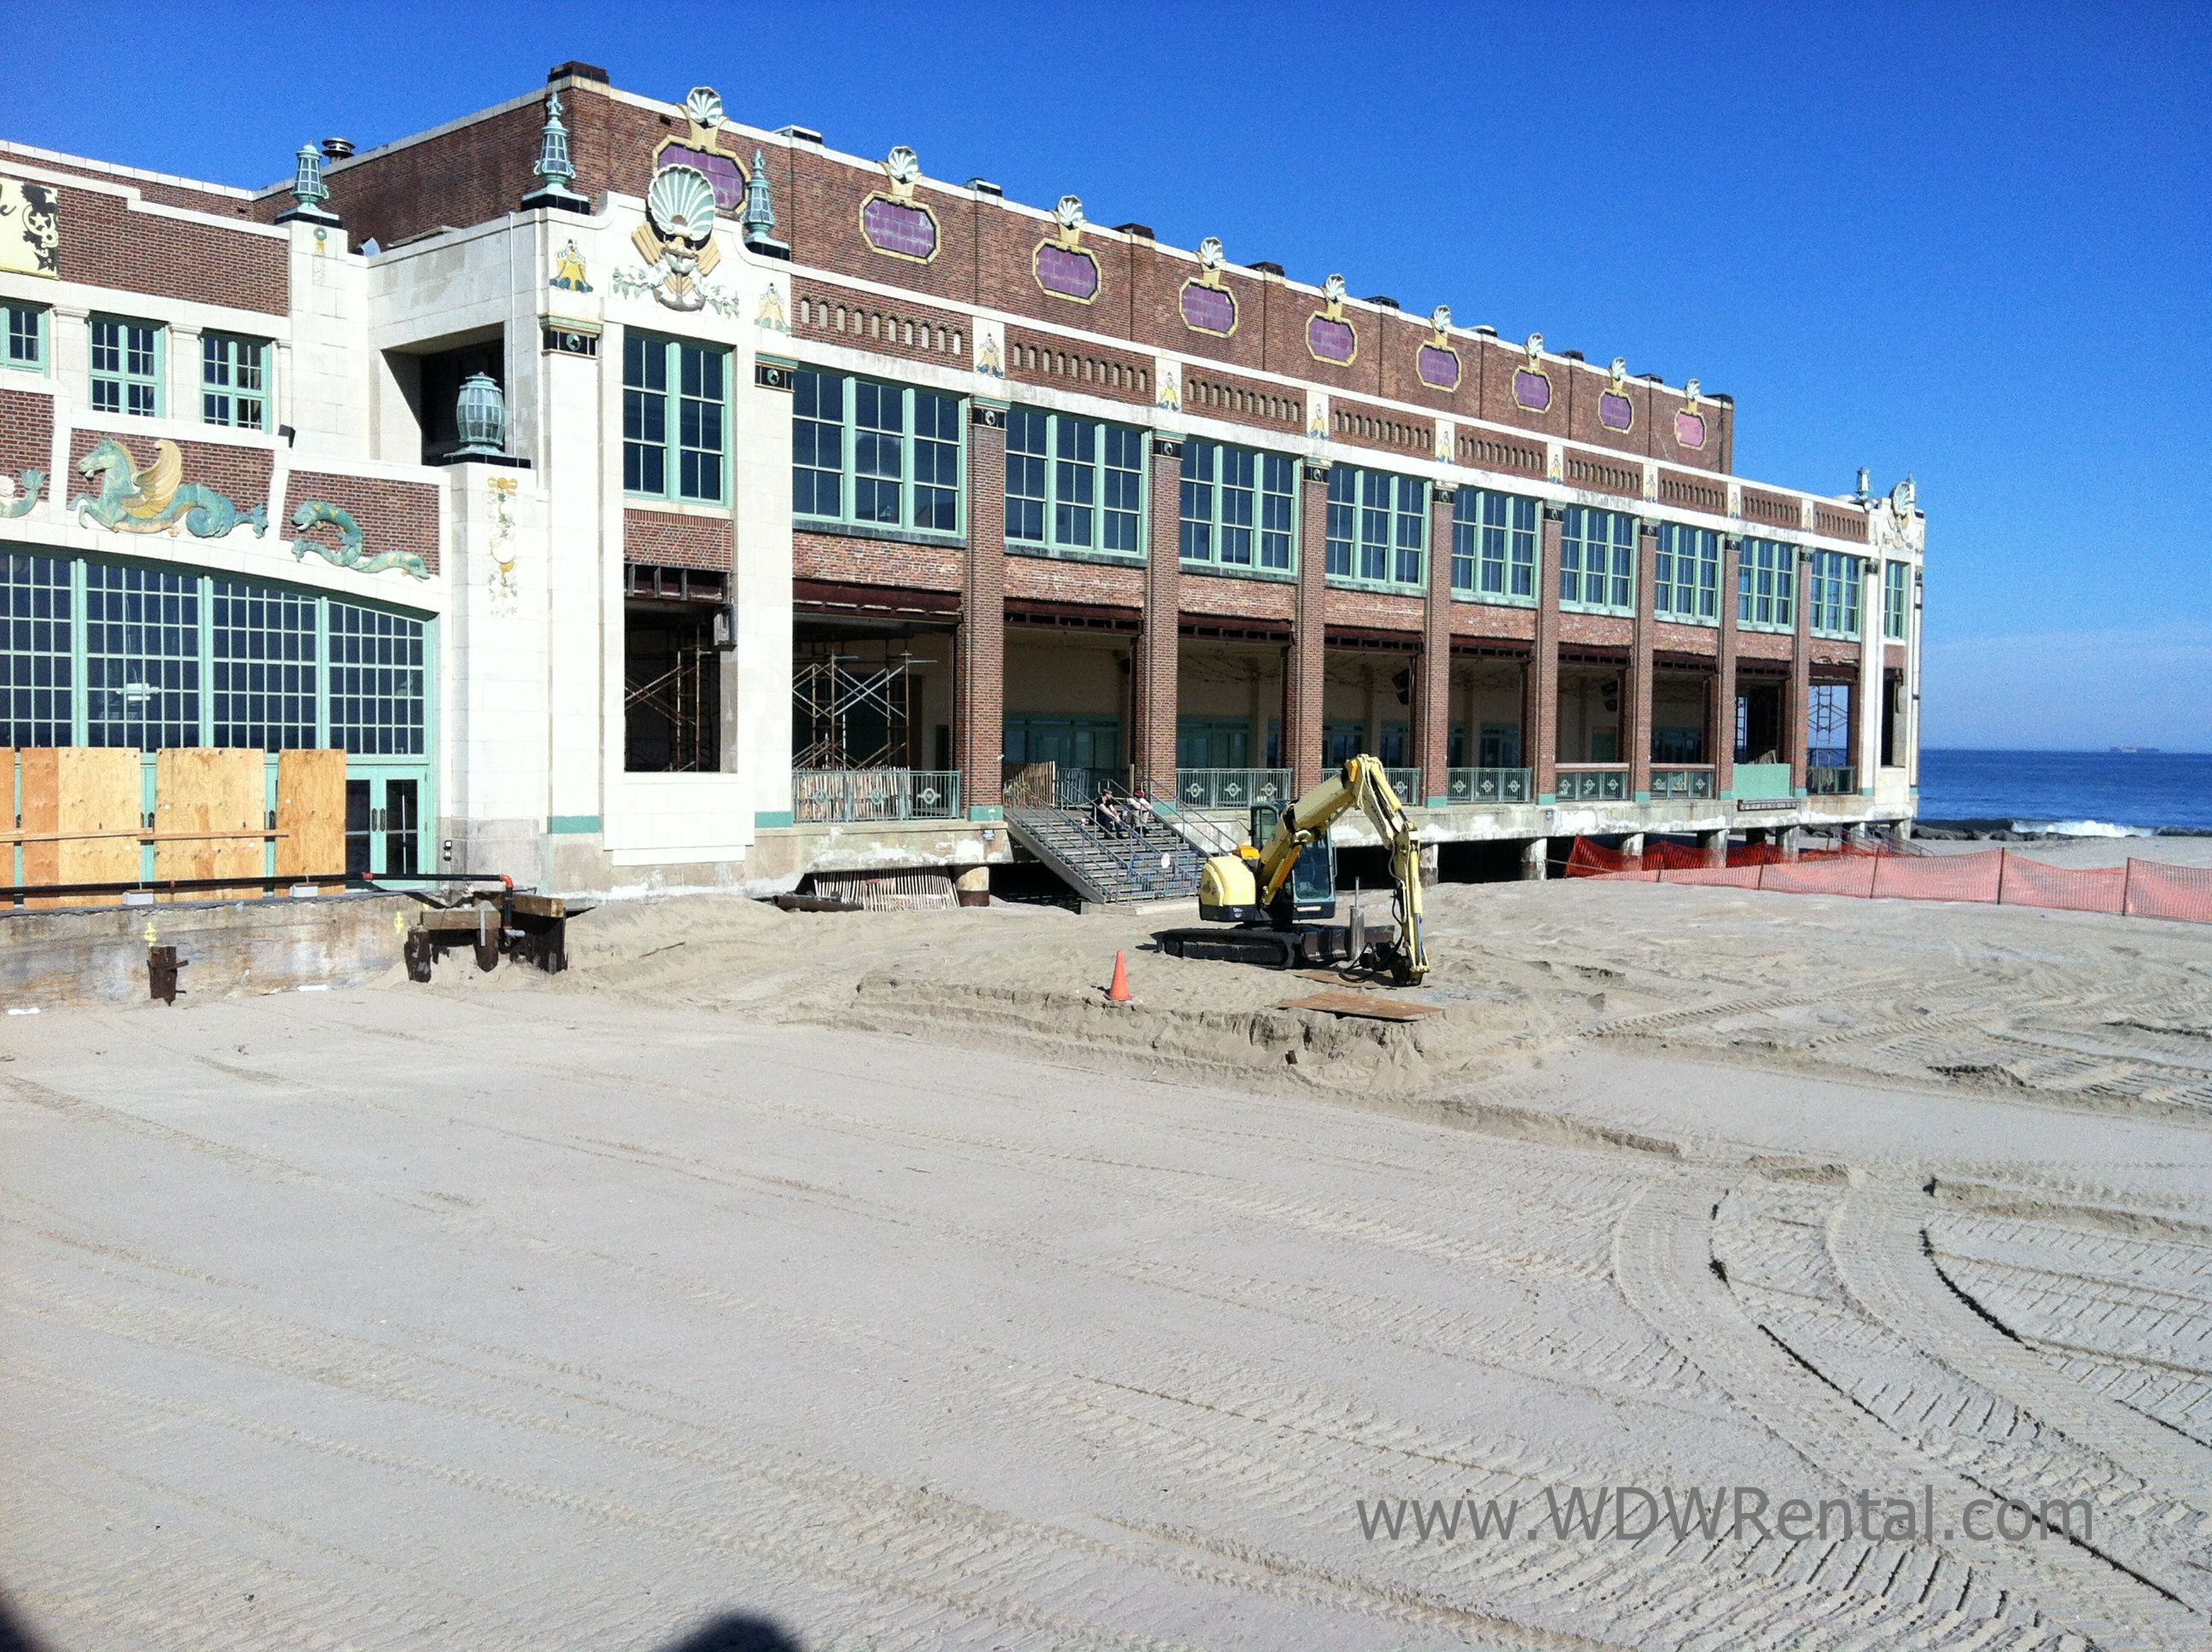 wedding venues asbury park nj%0A Convention Hall  Asbury Park  New Jersey  After Sandy With No Boardwalk